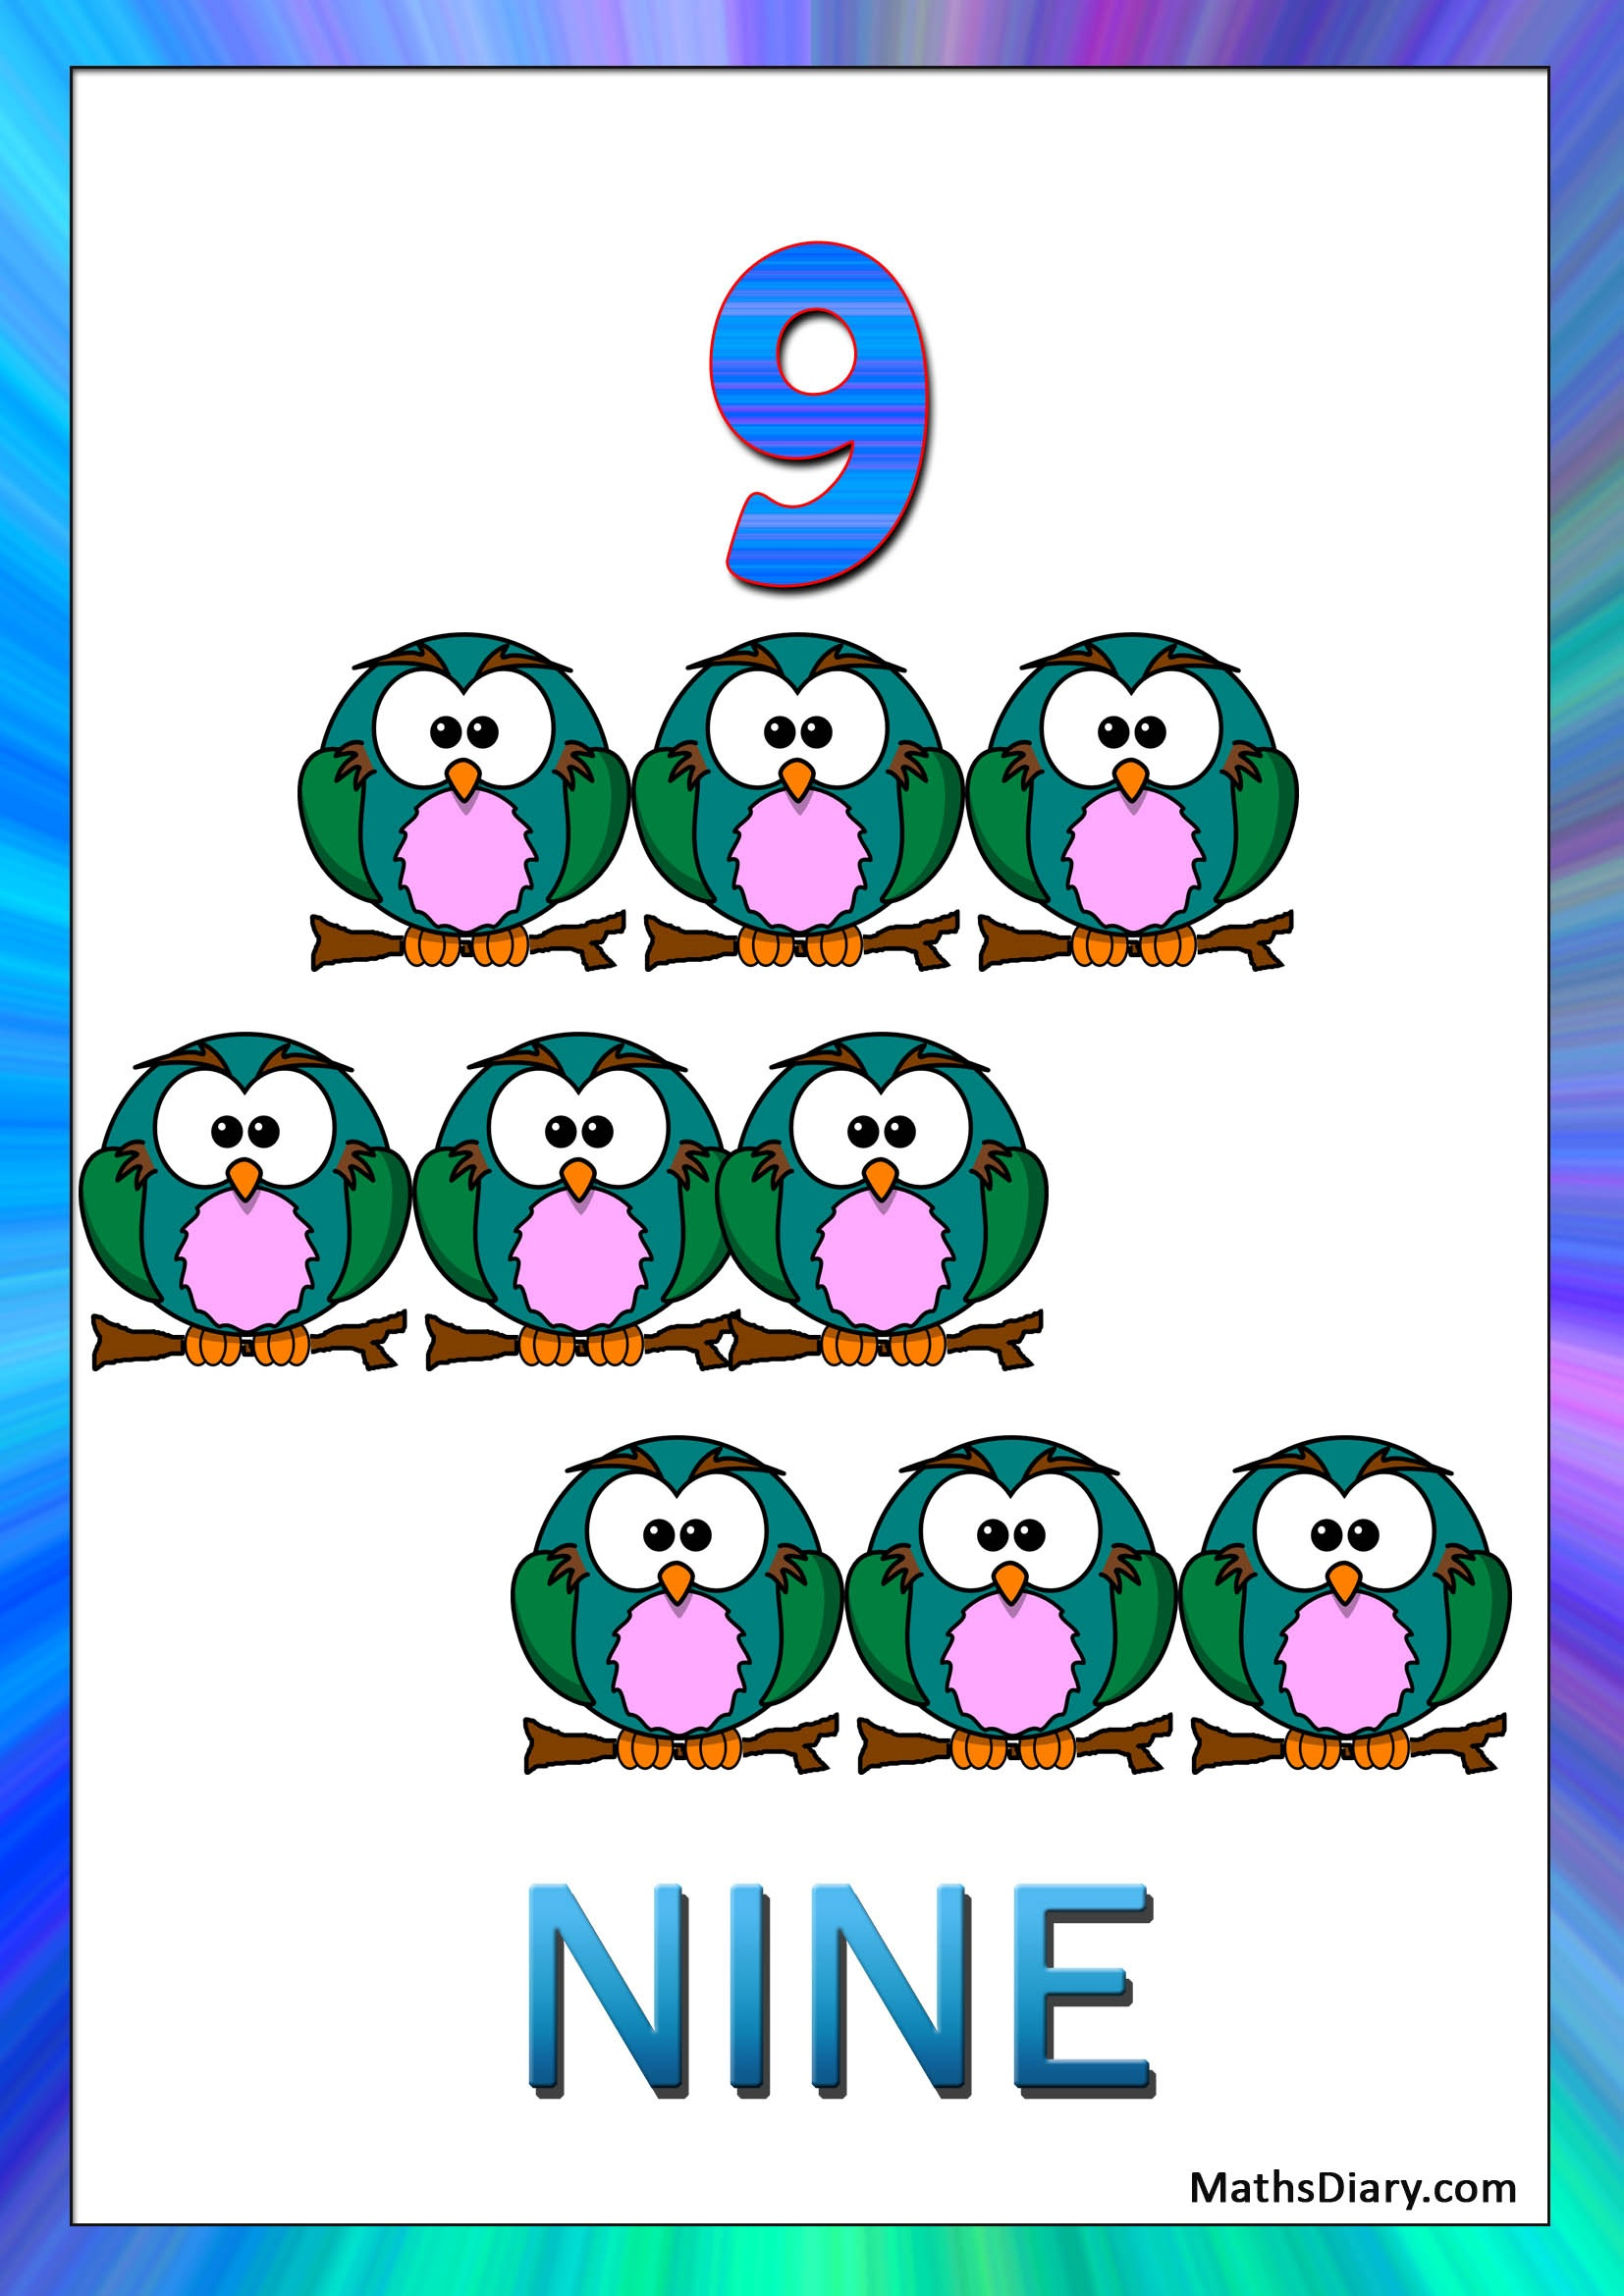 Learning Counting And Recognition Of Number 9 Worksheets Level 1 Help Sheets Part 3